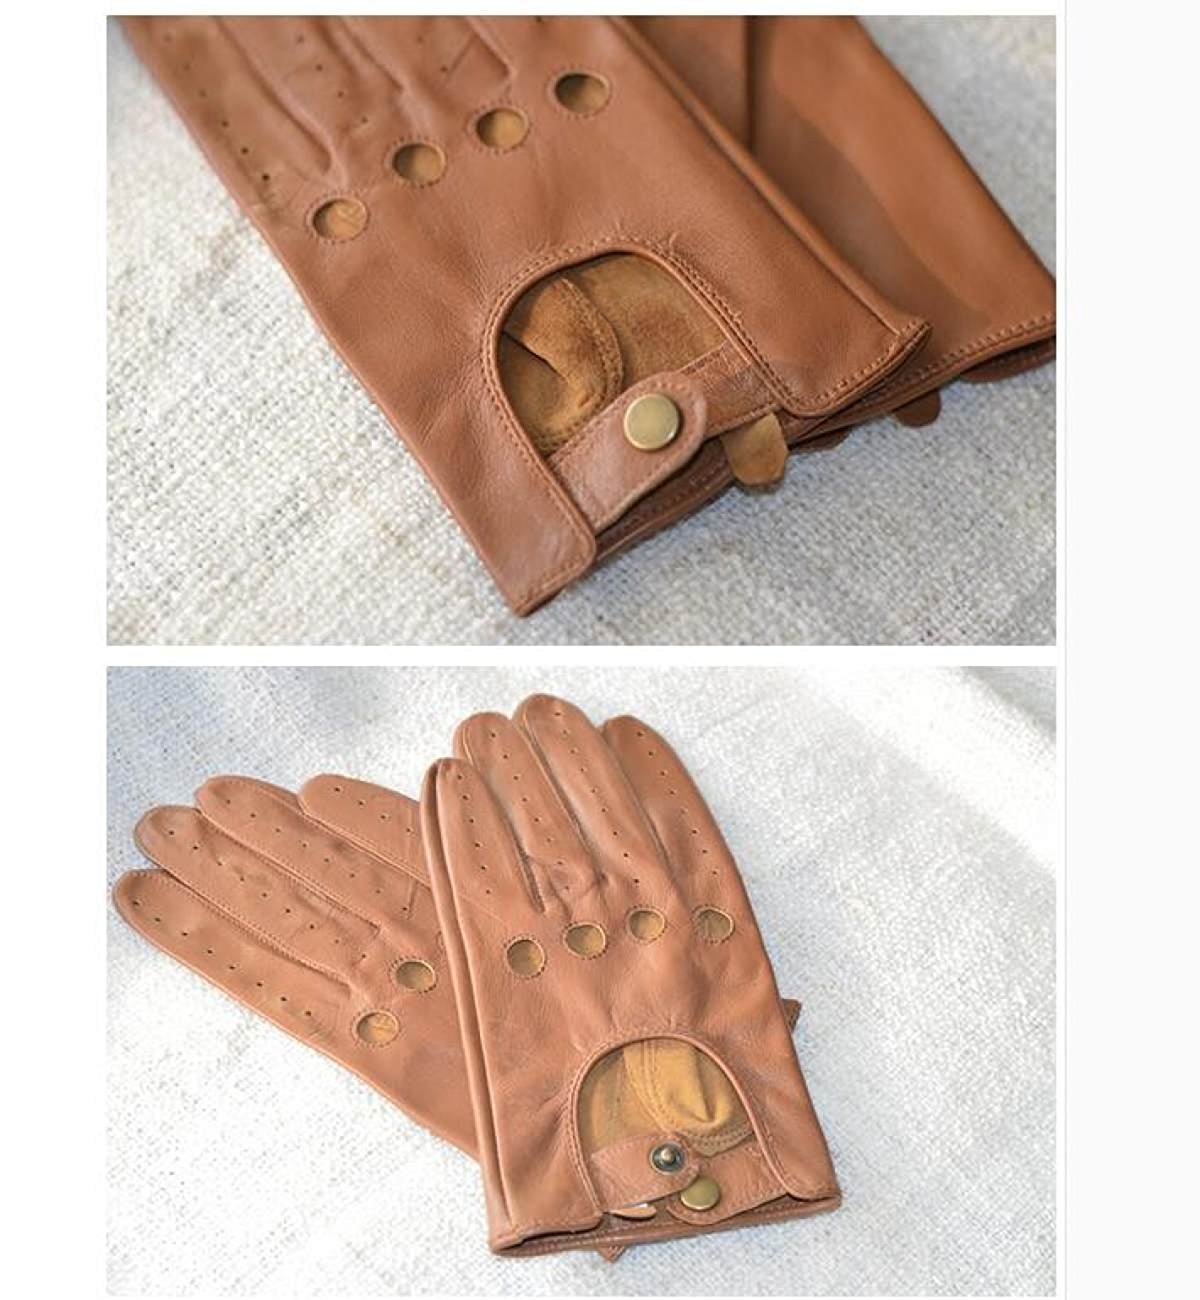 HOMEE Men'S Leather Drives Gloves Thin Repair Design Leakage Four Seasons Available,Brown,Medium by HOMEE (Image #4)